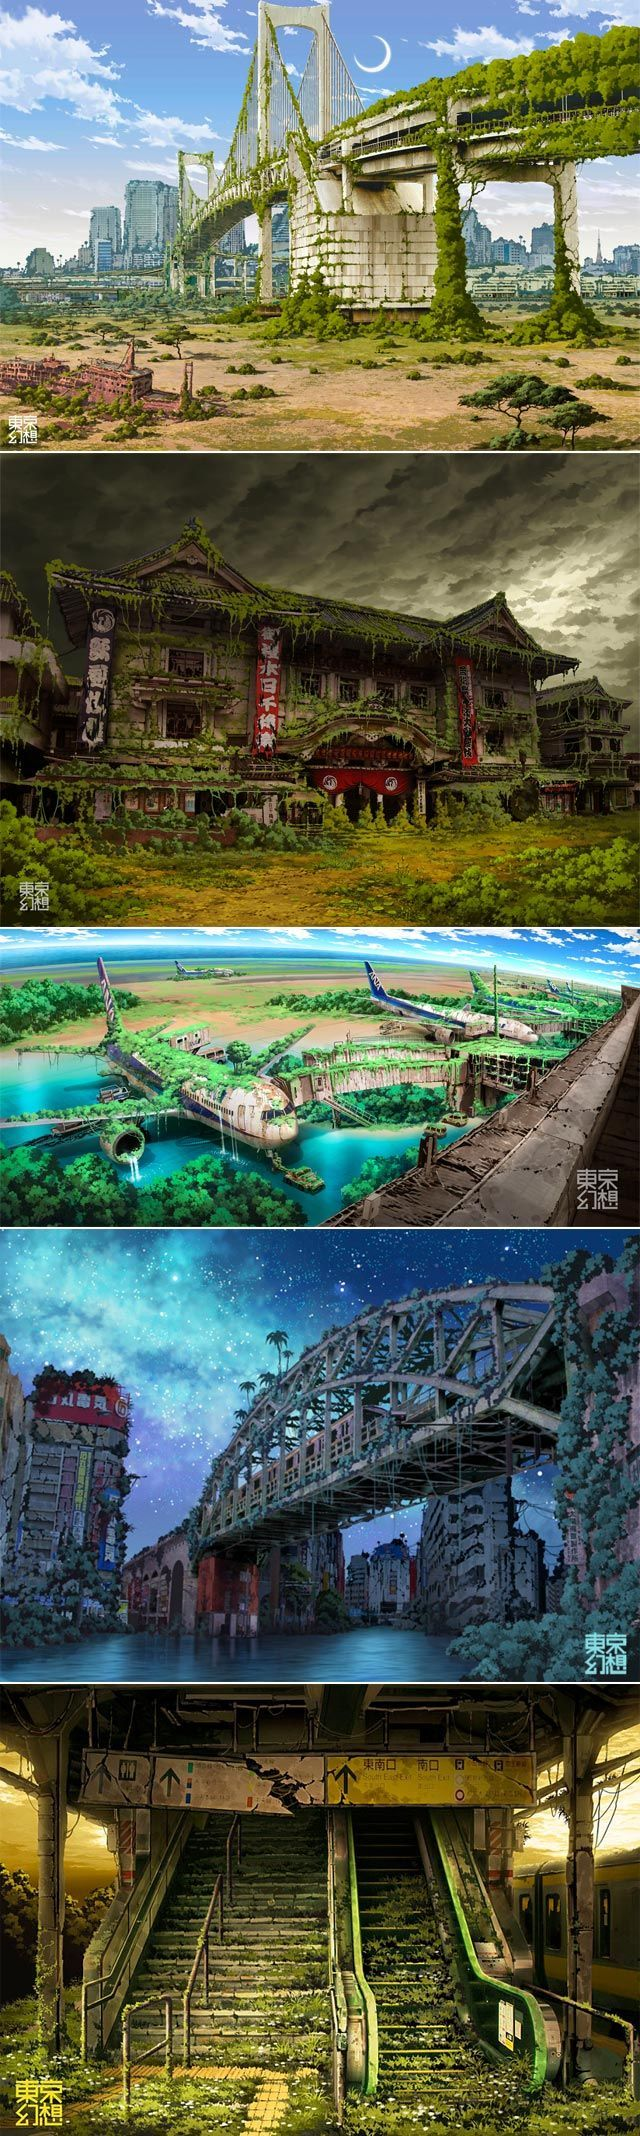 The illustrations of TokyoGenso (a.k.a. Tokyo Fantasy) depict a post-apocalyptic Tokyo abandoned and overtaken by nature.